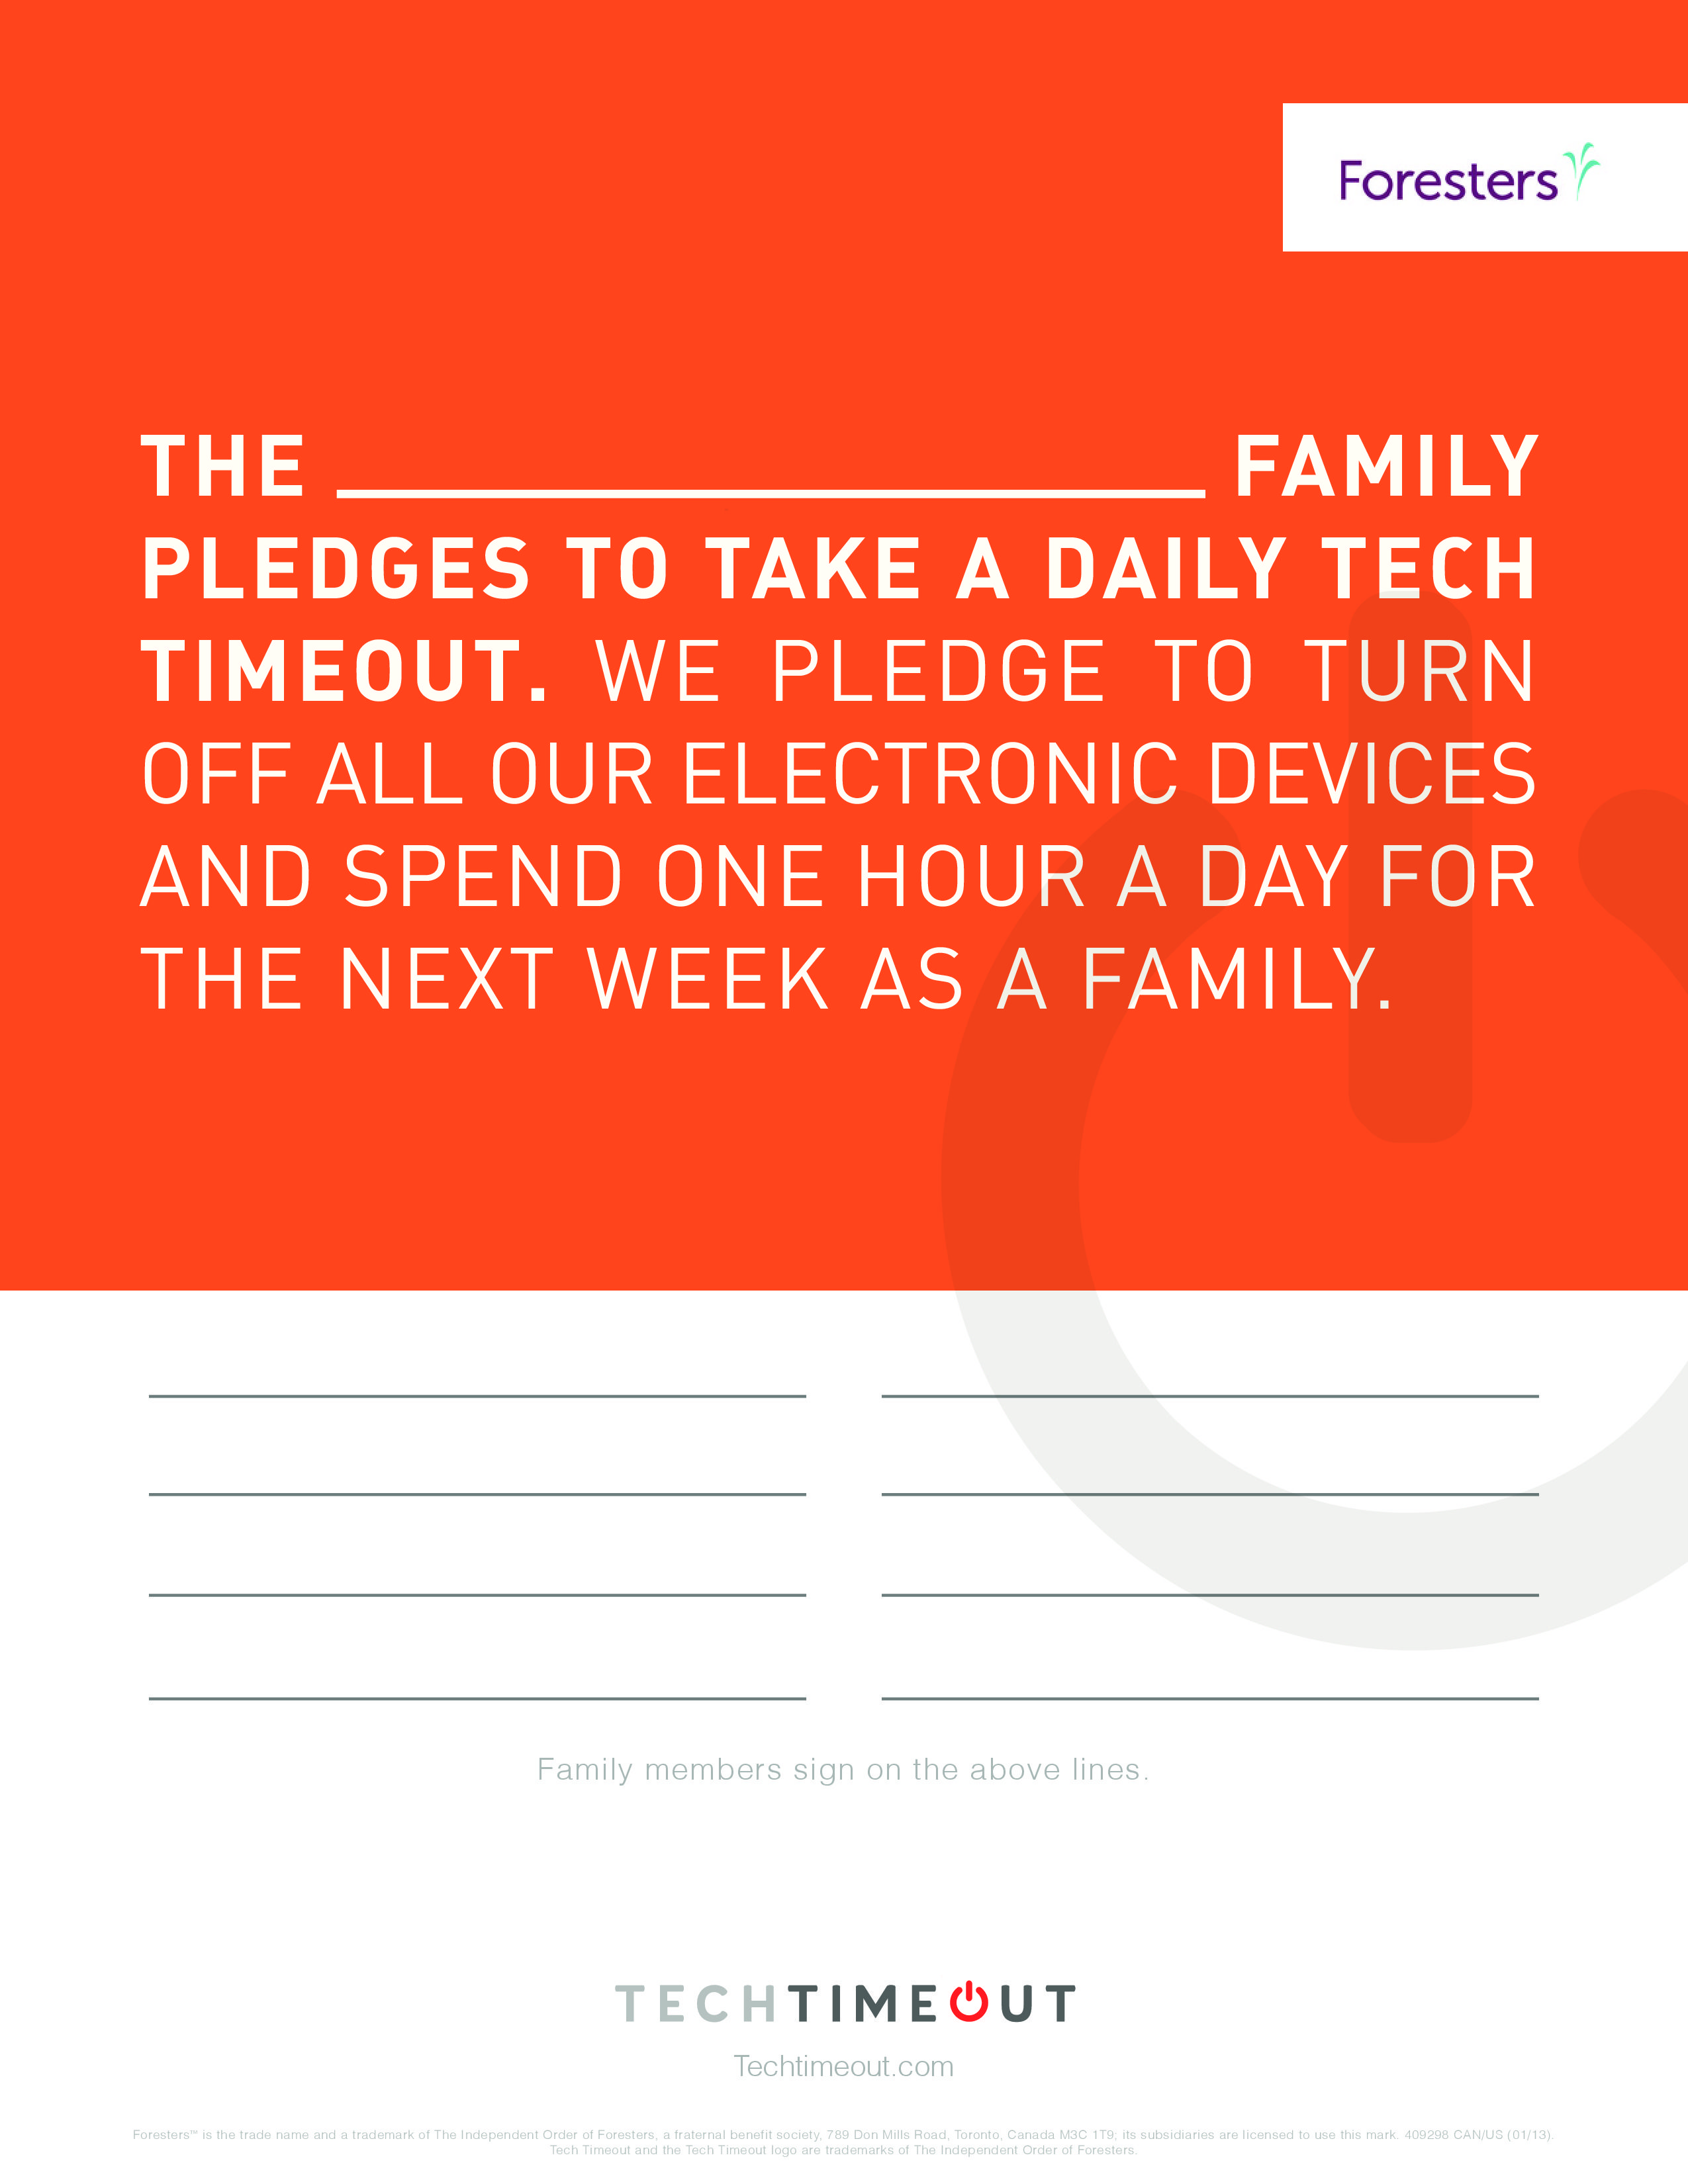 Foresters Mobile Quotes Pledge To Take A Tech Timeout With Your Familyfamily